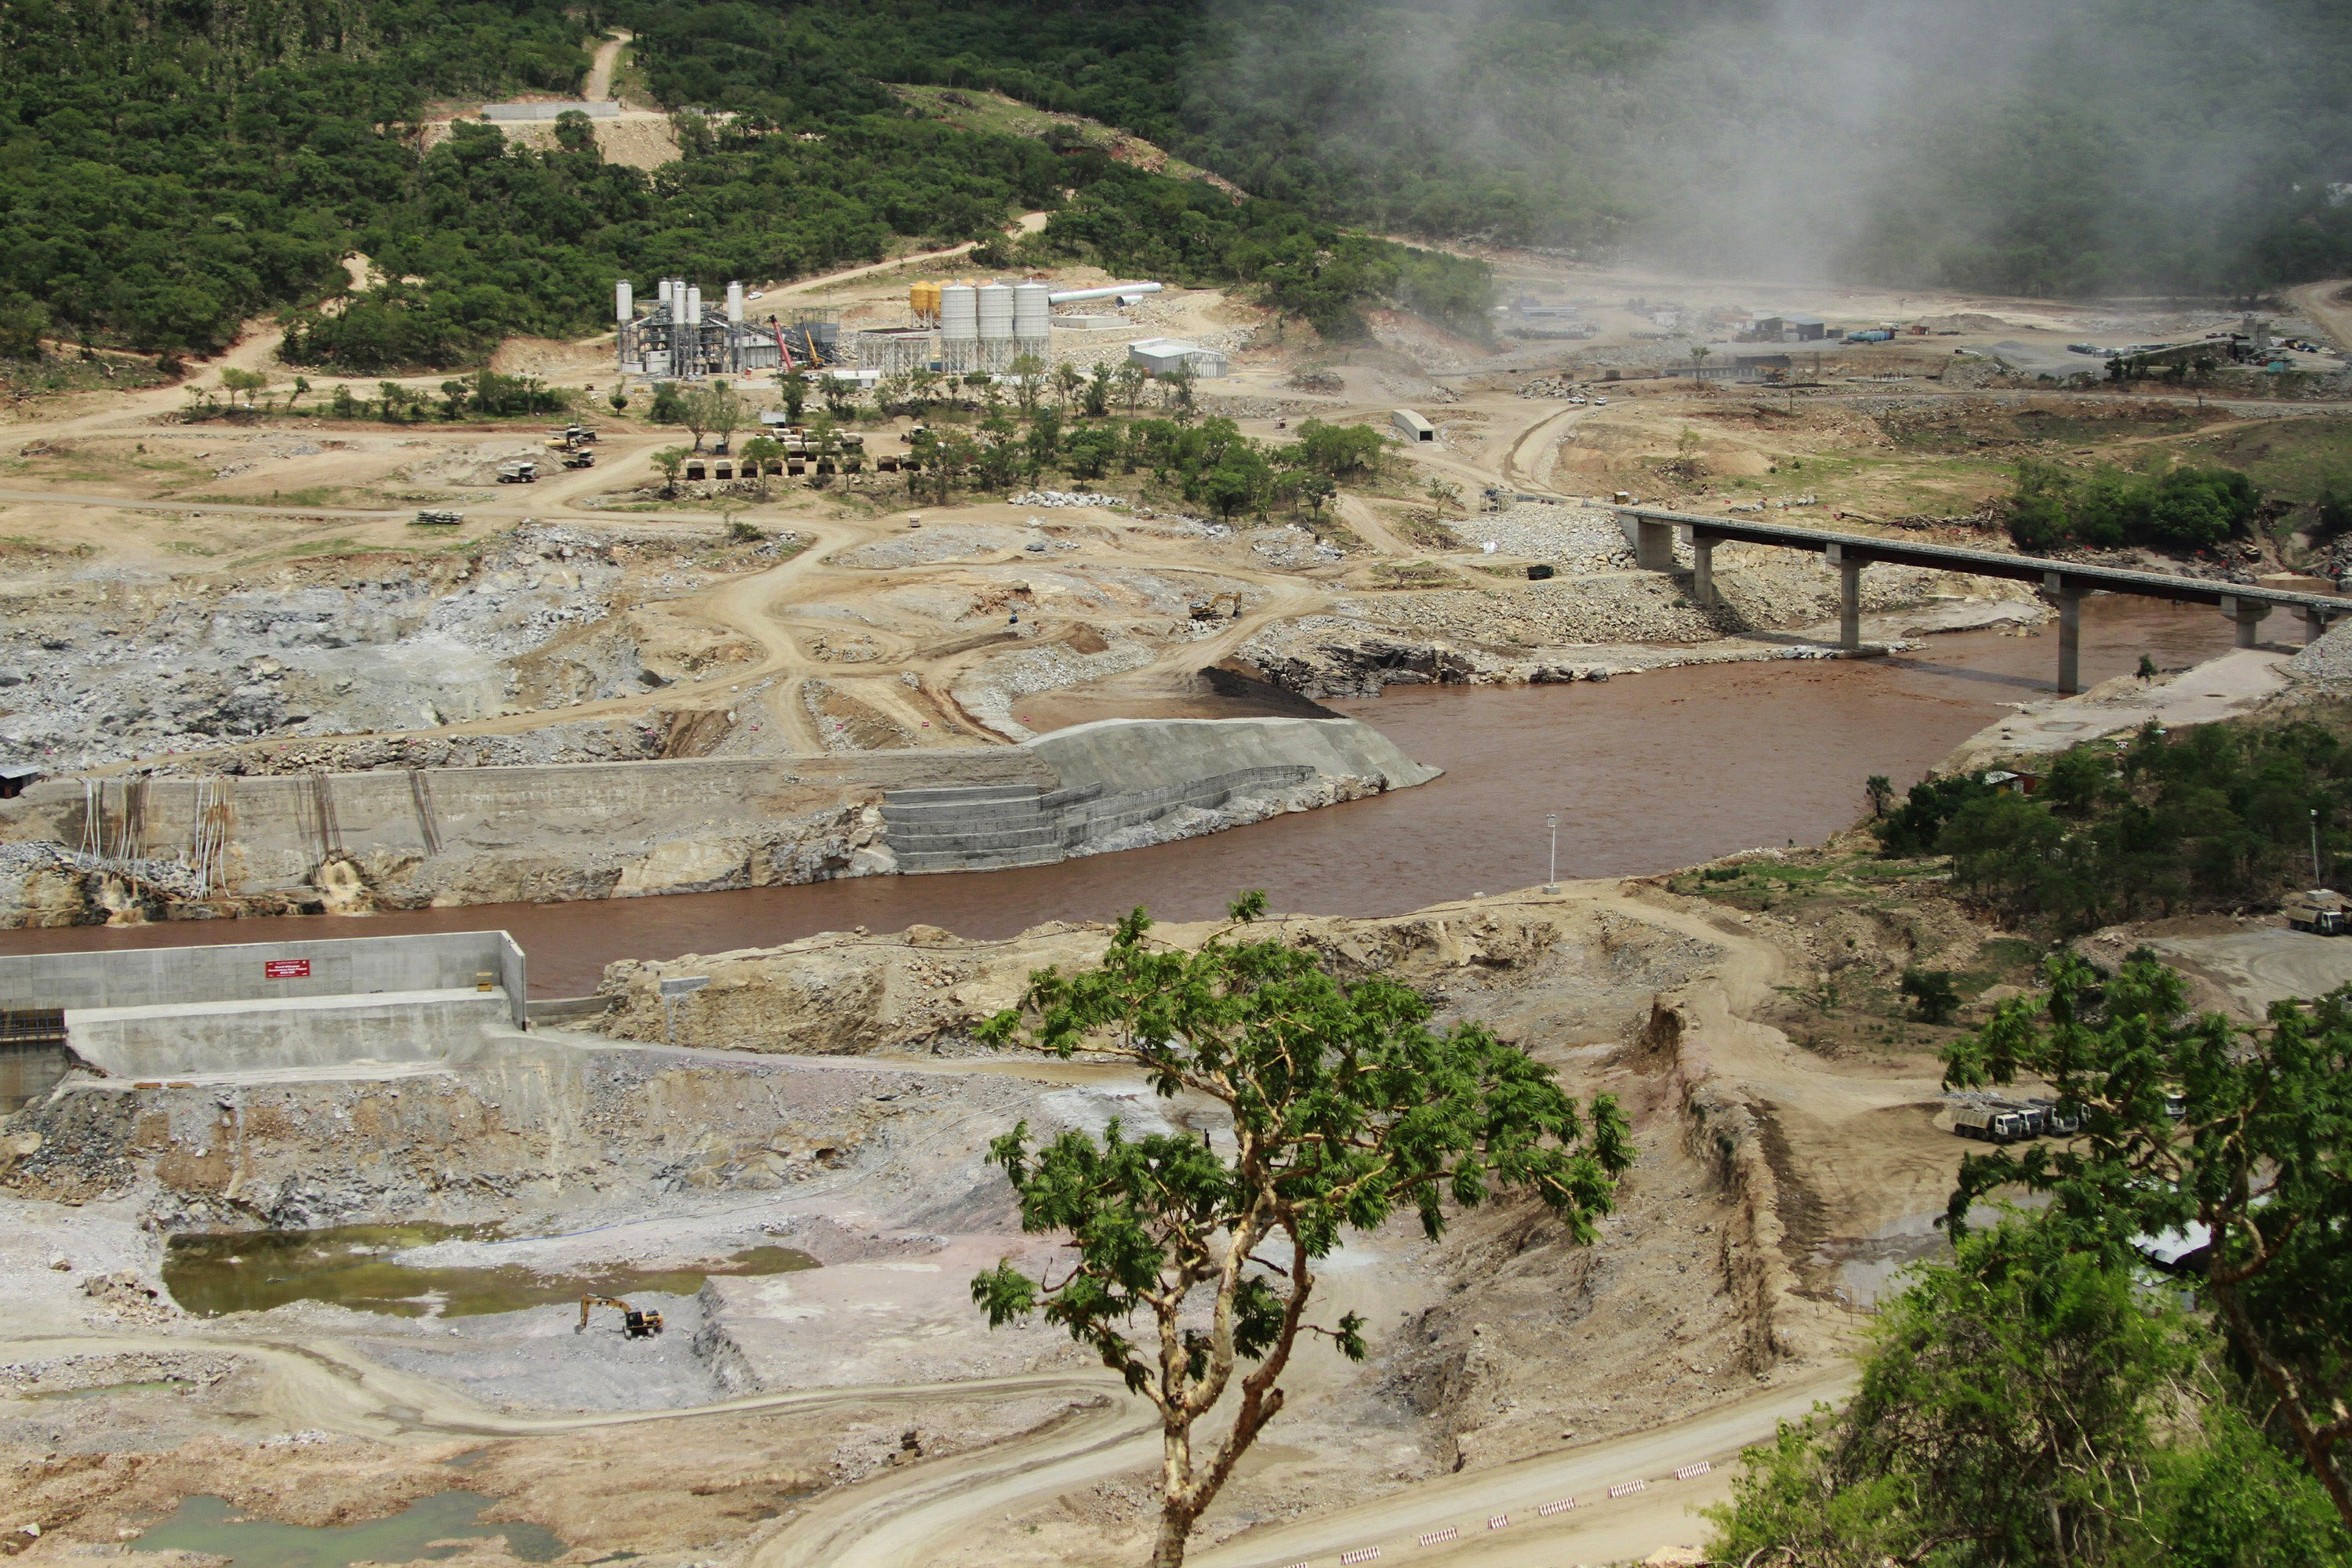 3 African nations meet to draft deal on Nile dam dispute